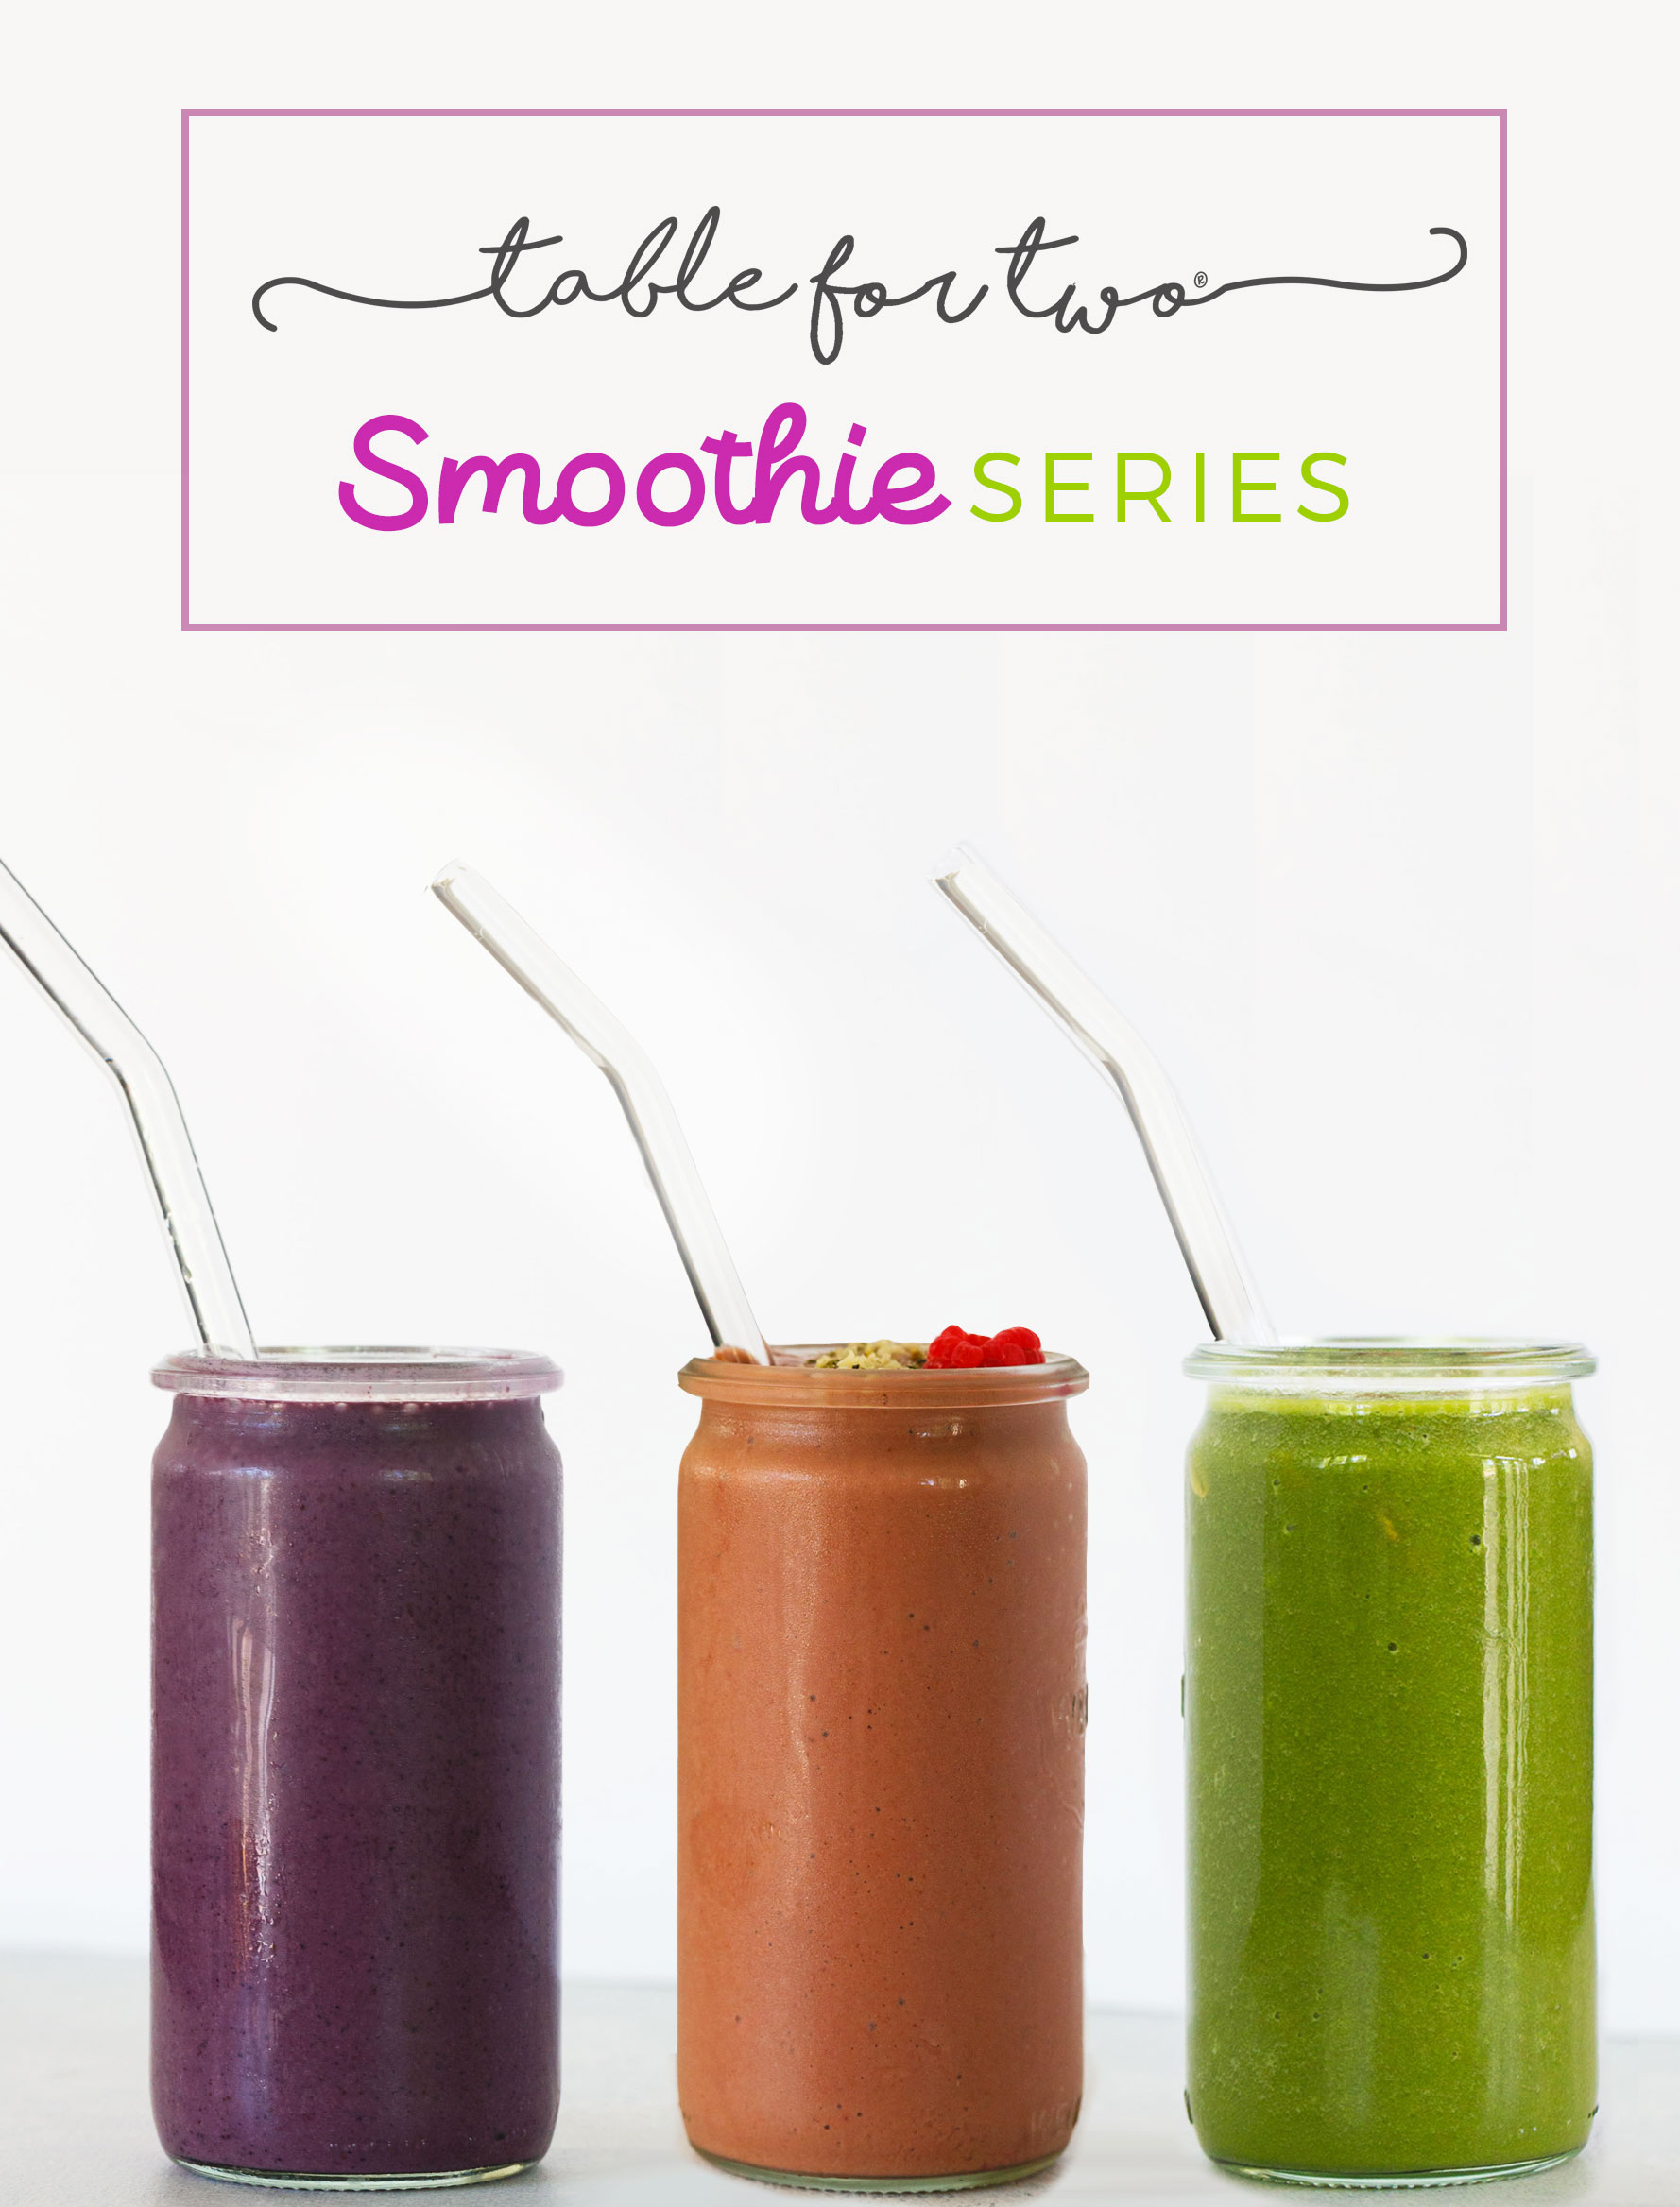 Table for Two's Smoothie Series